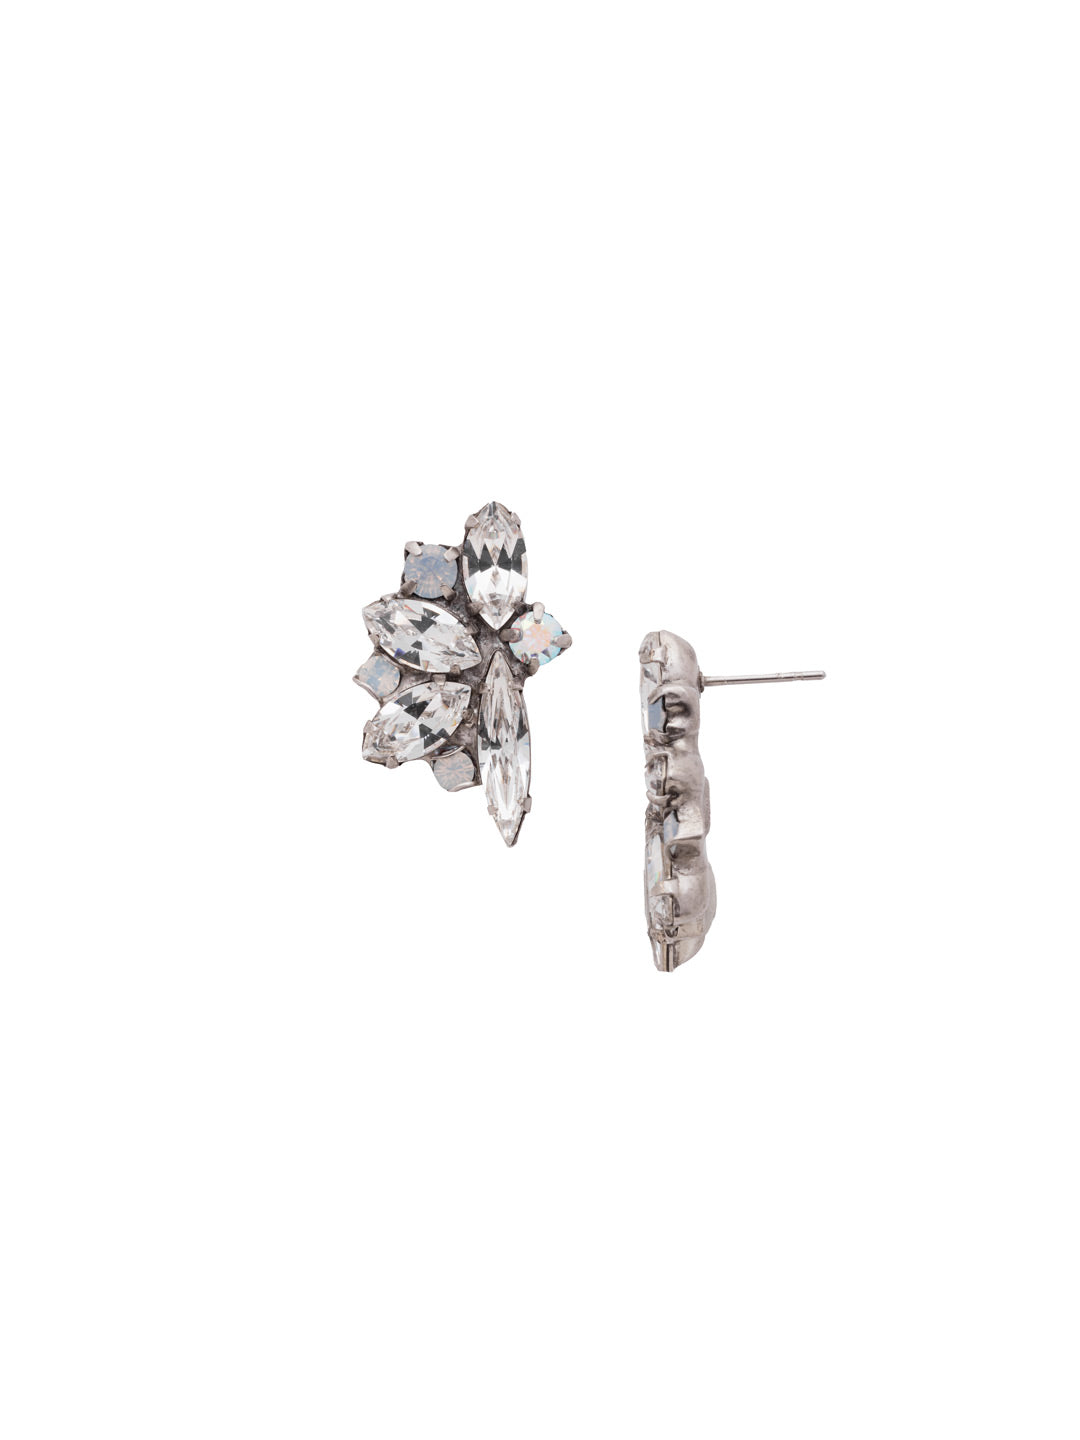 Fanned Vavette Stud Earrings - ECZ21ASWBR